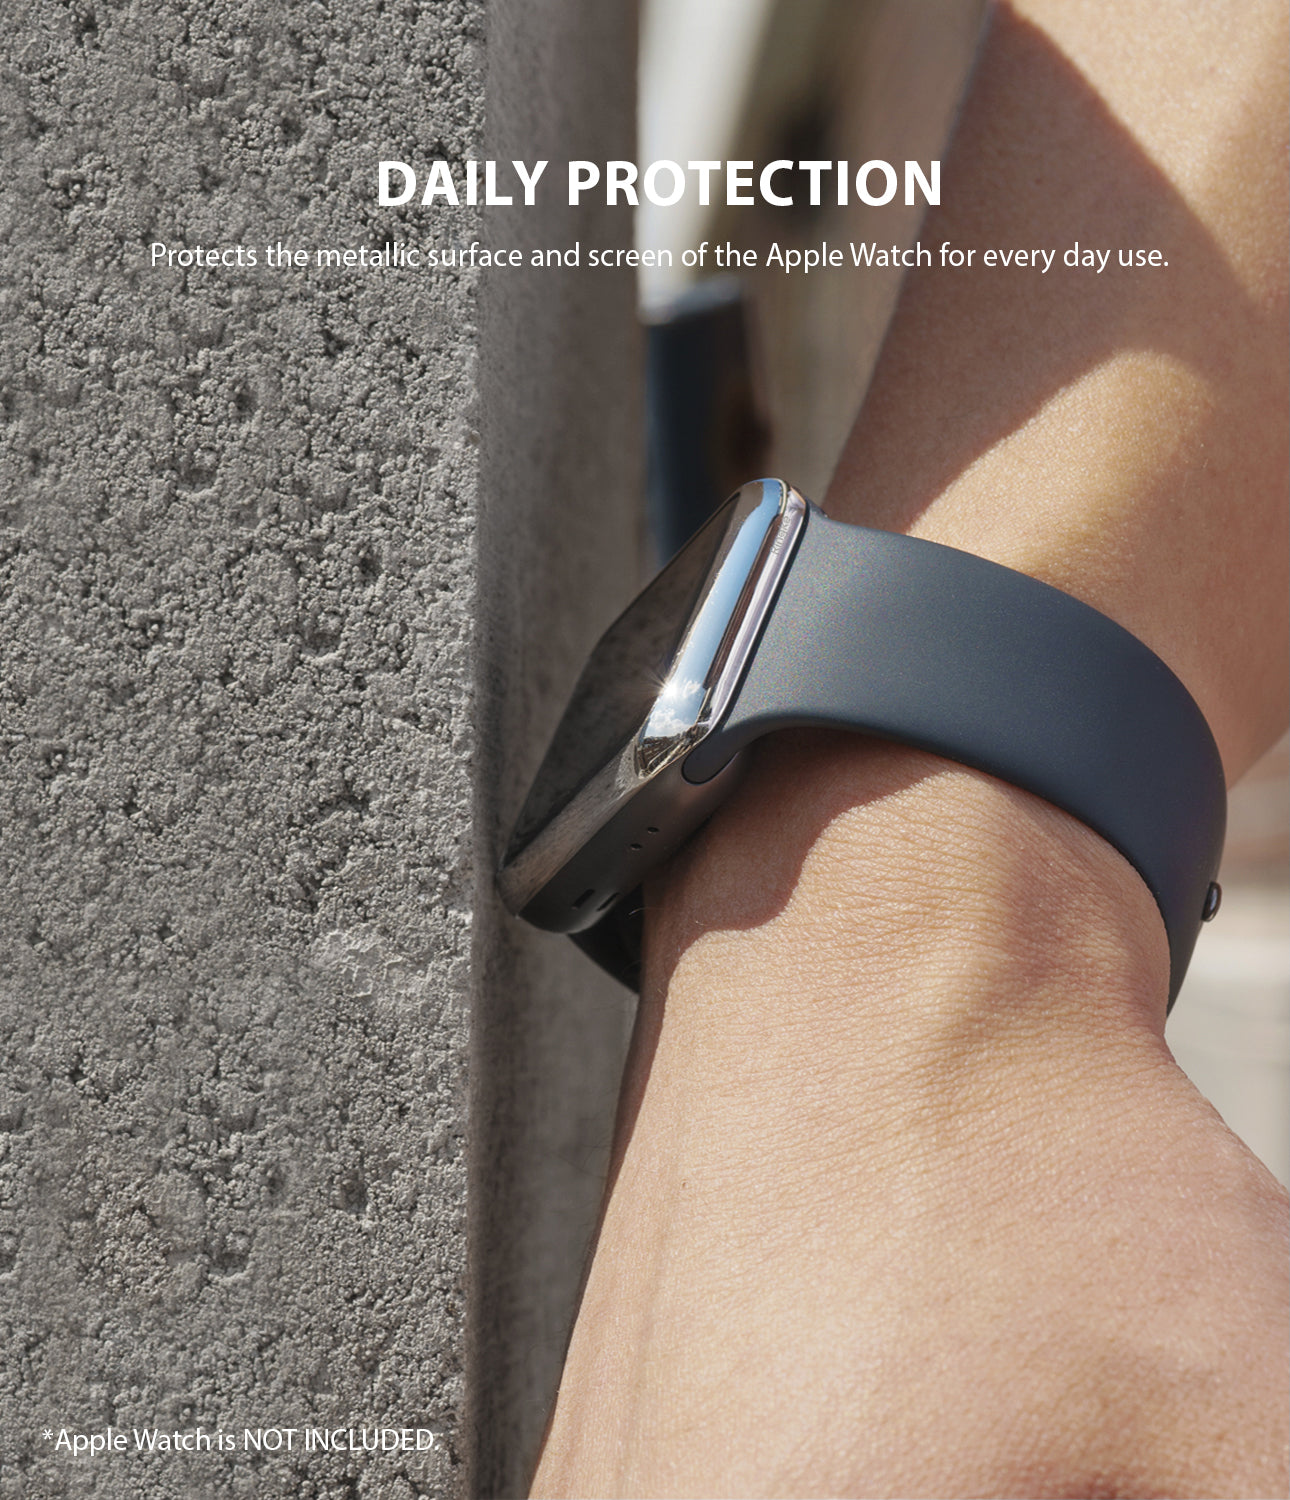 protects the metallic surface and screen of the apple watch for every day use